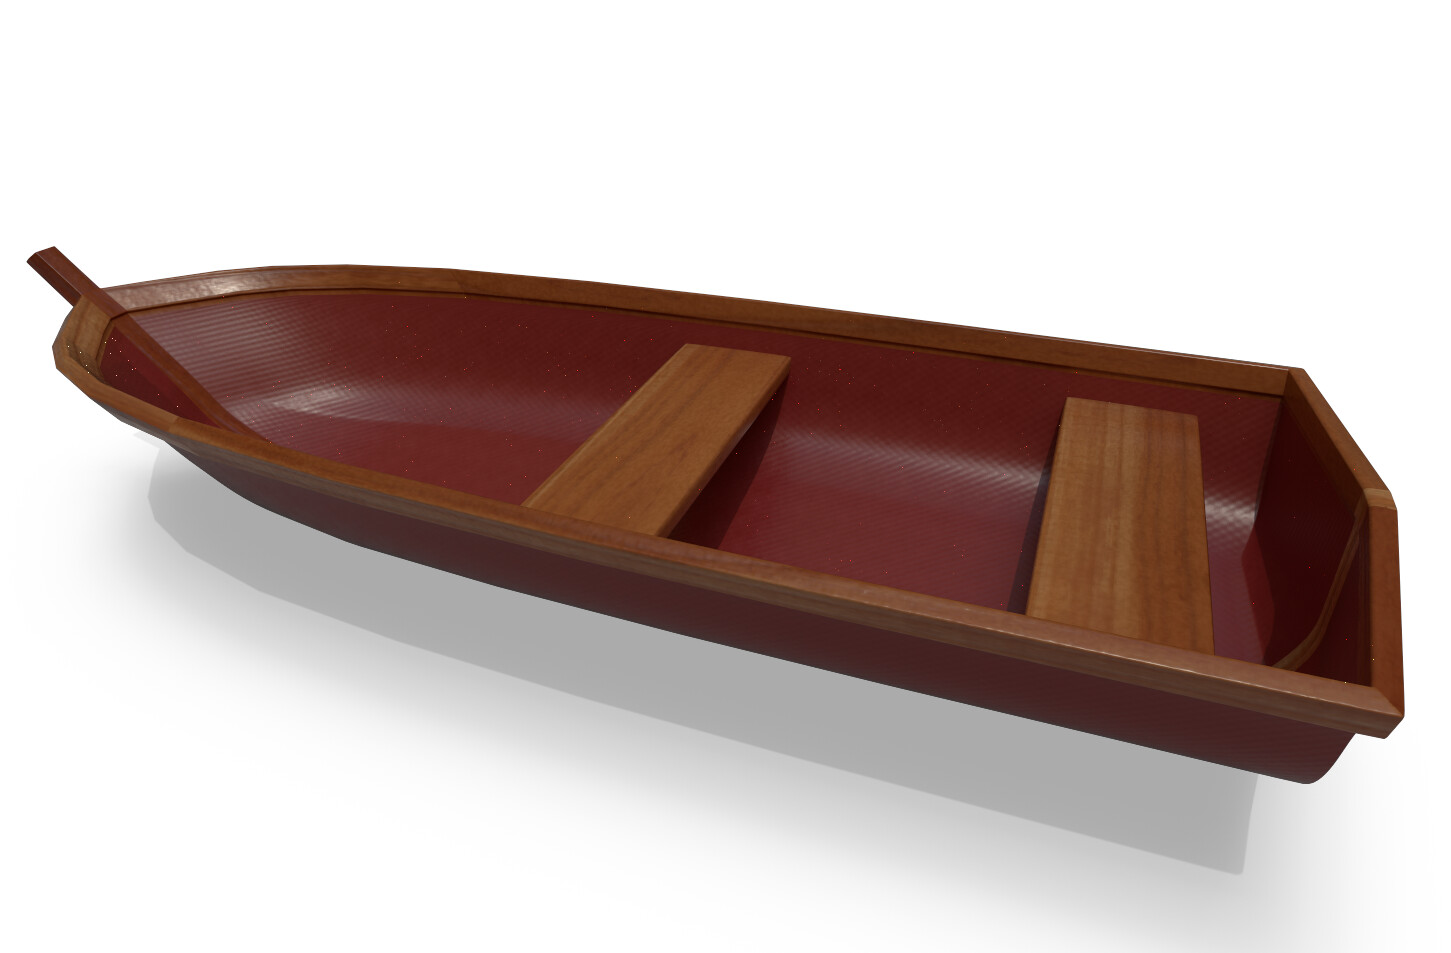 Joseph moniz rowboat001e